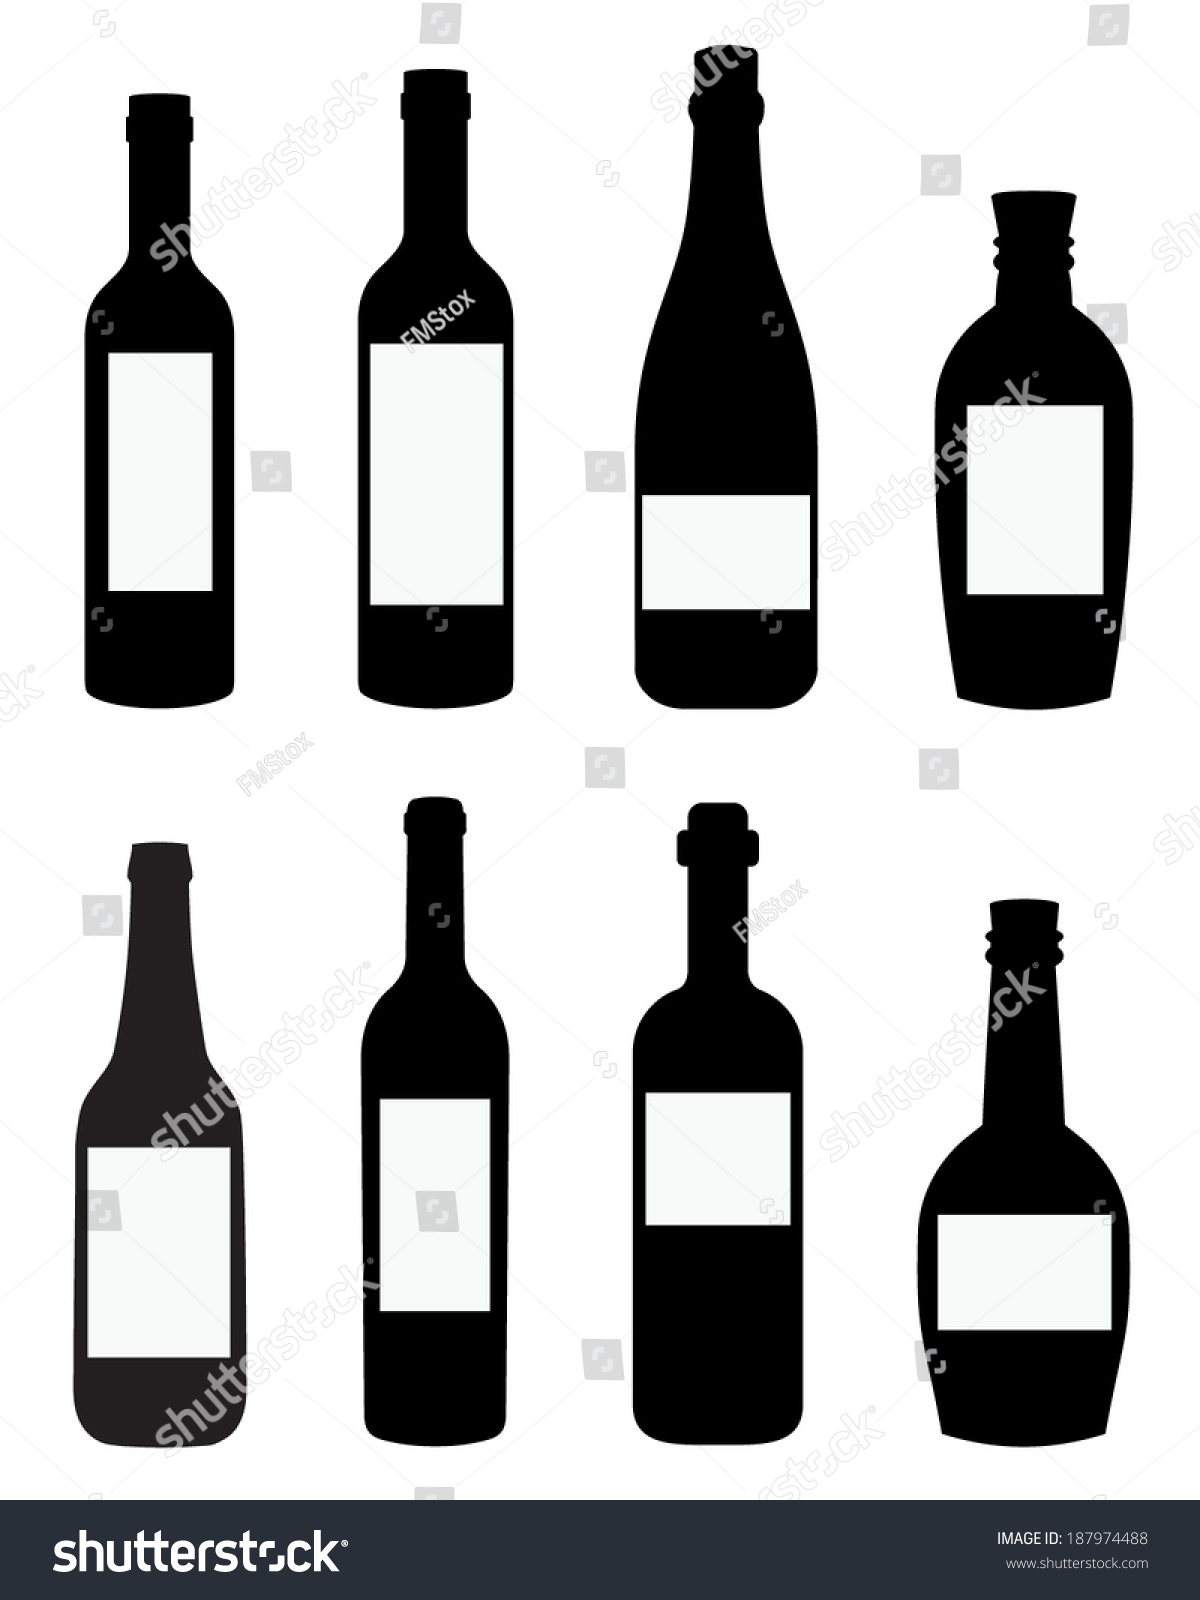 vector liquor wine bottle templates spot stock vector 187974488 shutterstock. Black Bedroom Furniture Sets. Home Design Ideas